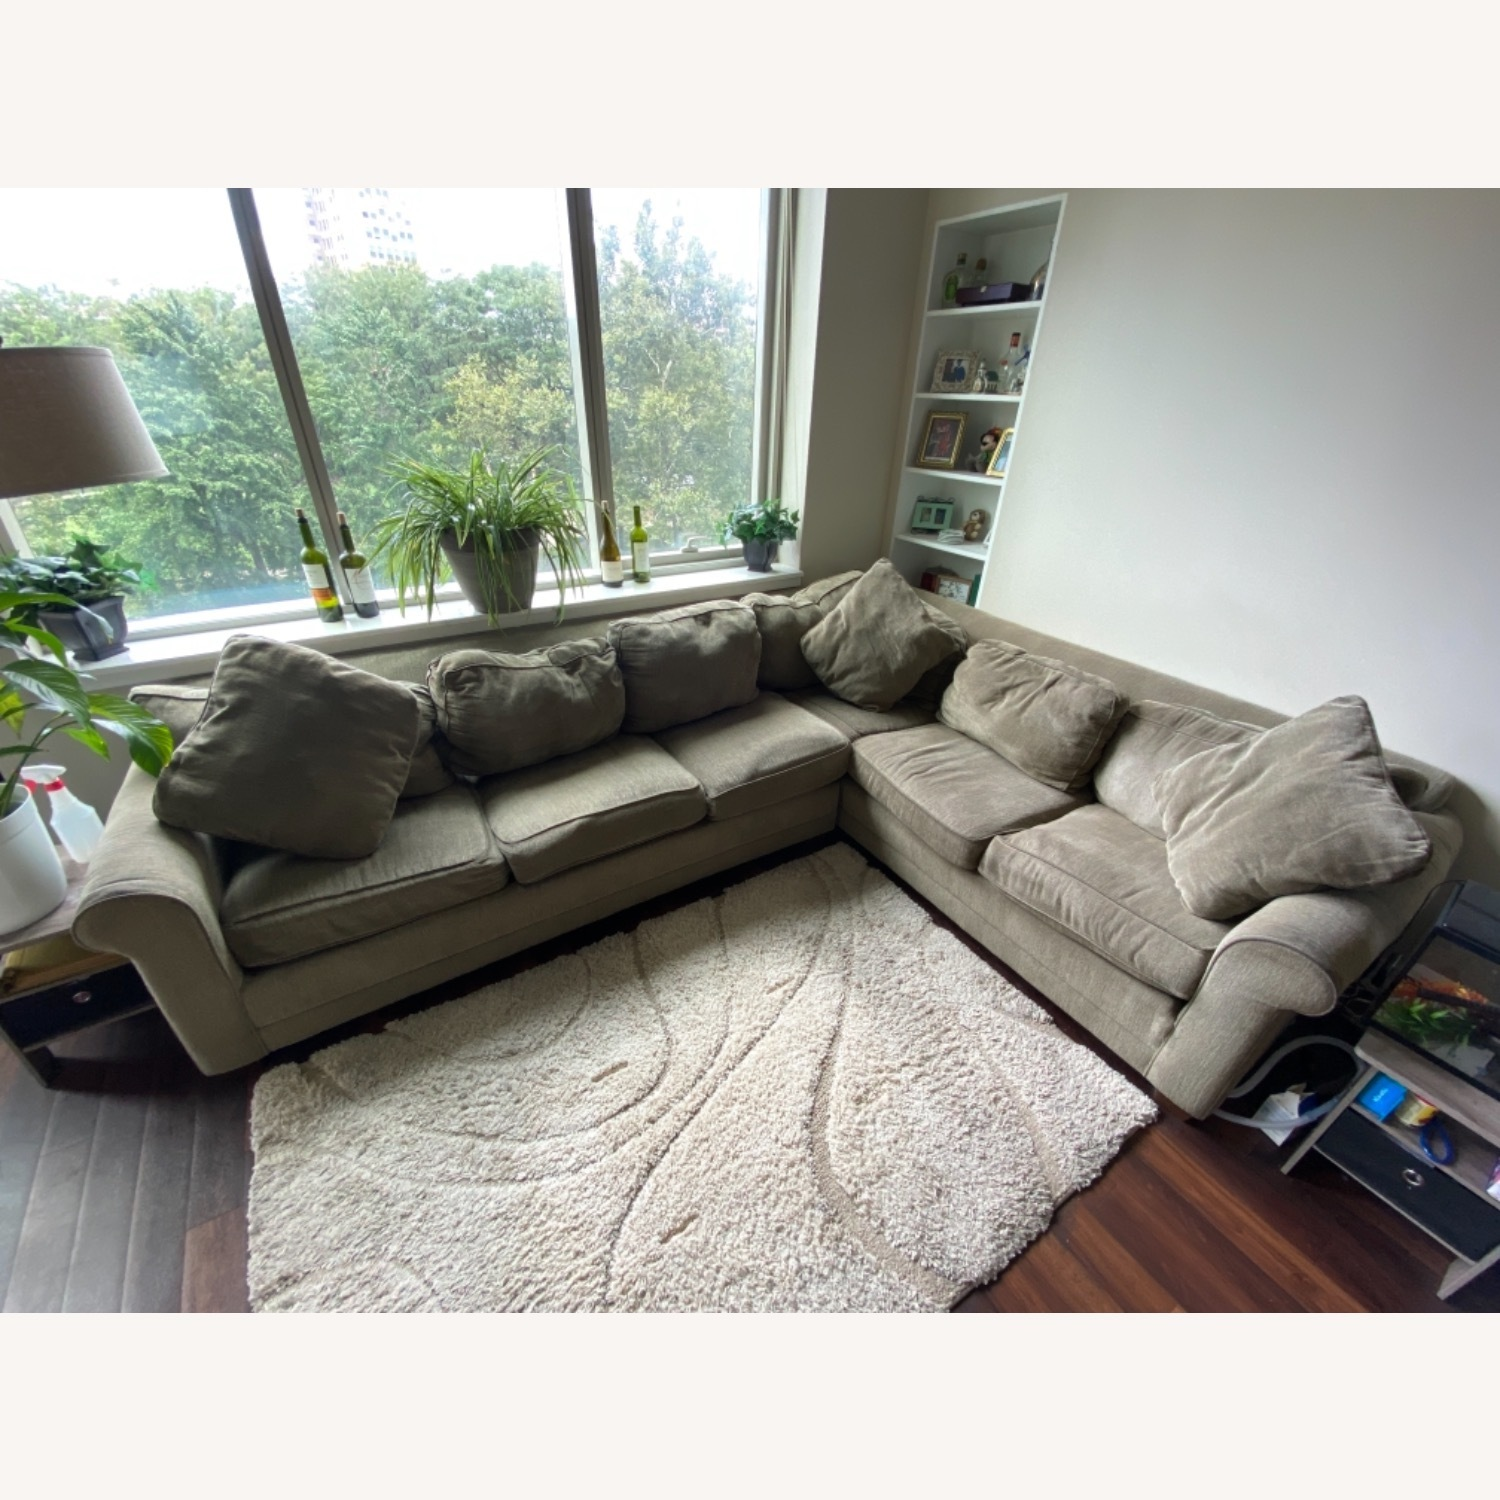 Olive Green 2 Piece Sectional Sleeper Sofa - image-1